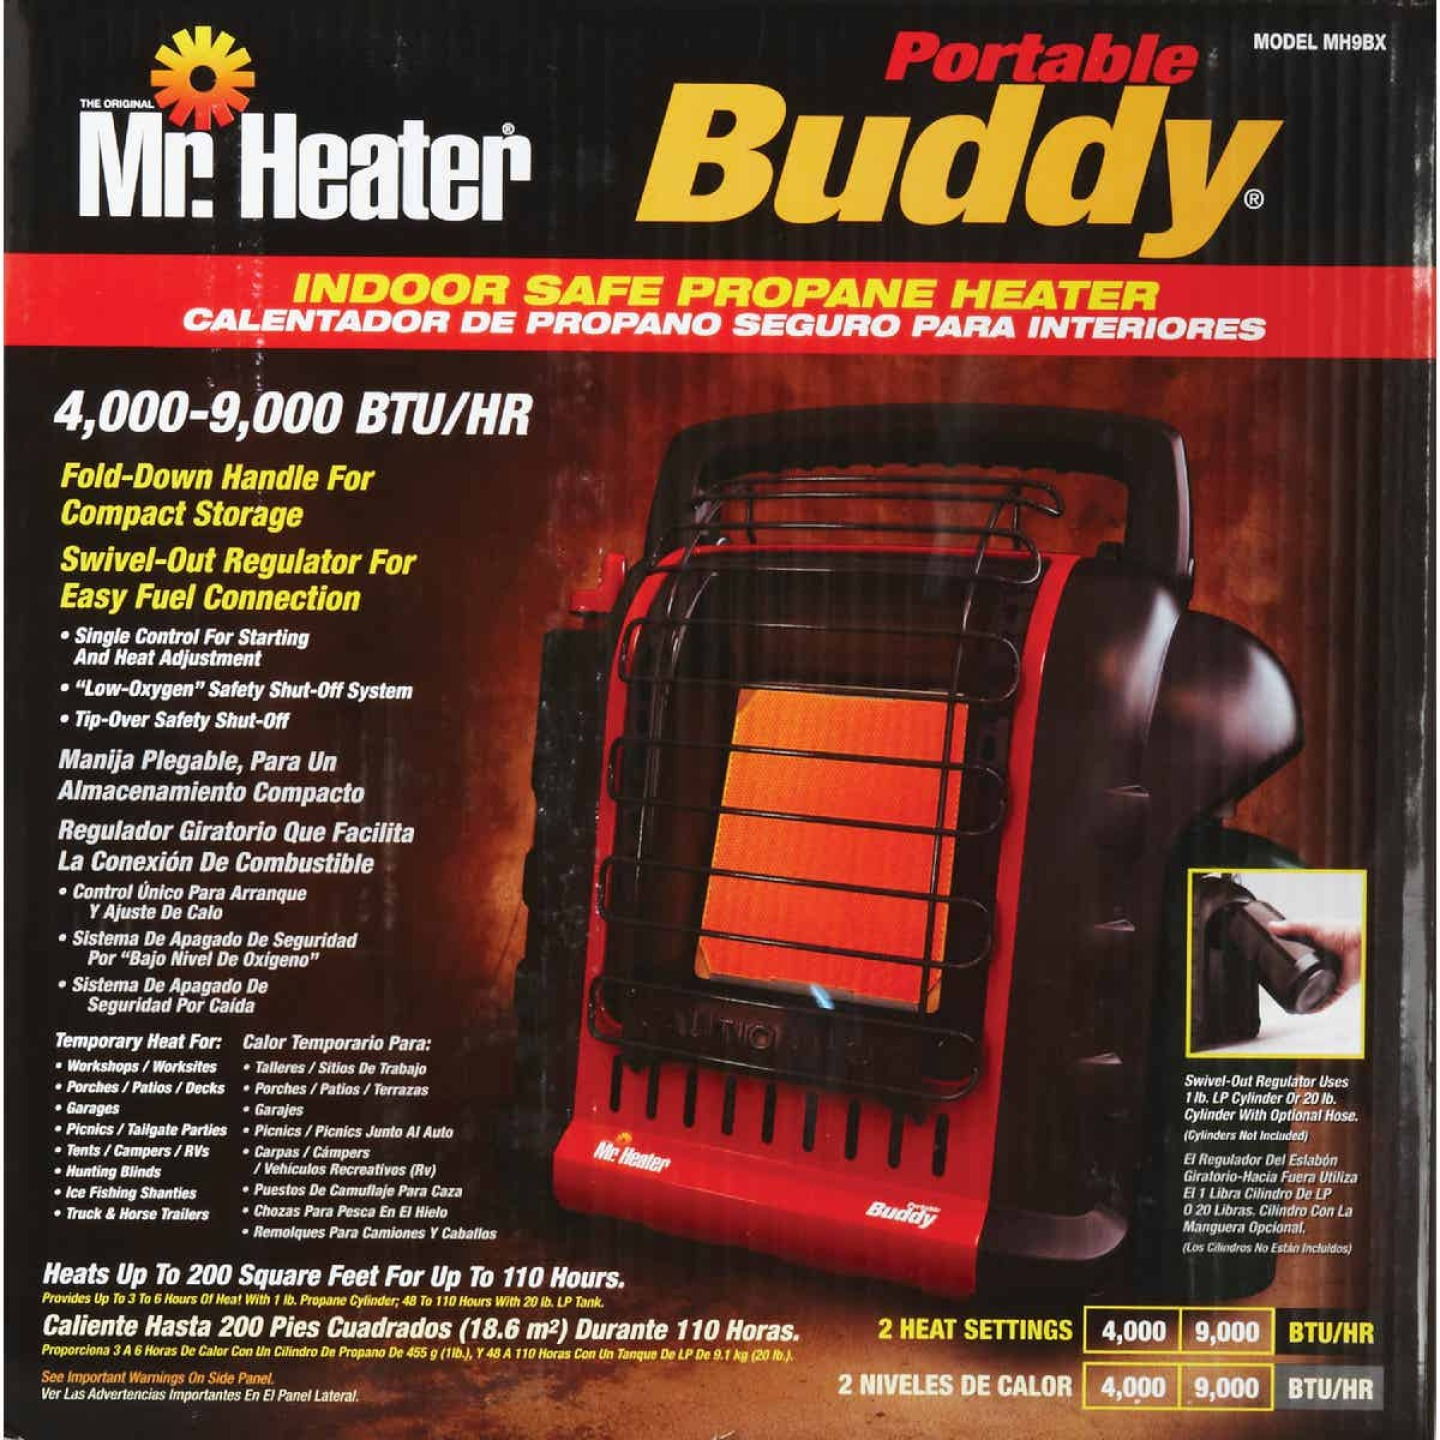 MR. HEATER 9000 BTU Radiant Portable Buddy Propane Heater Image 7